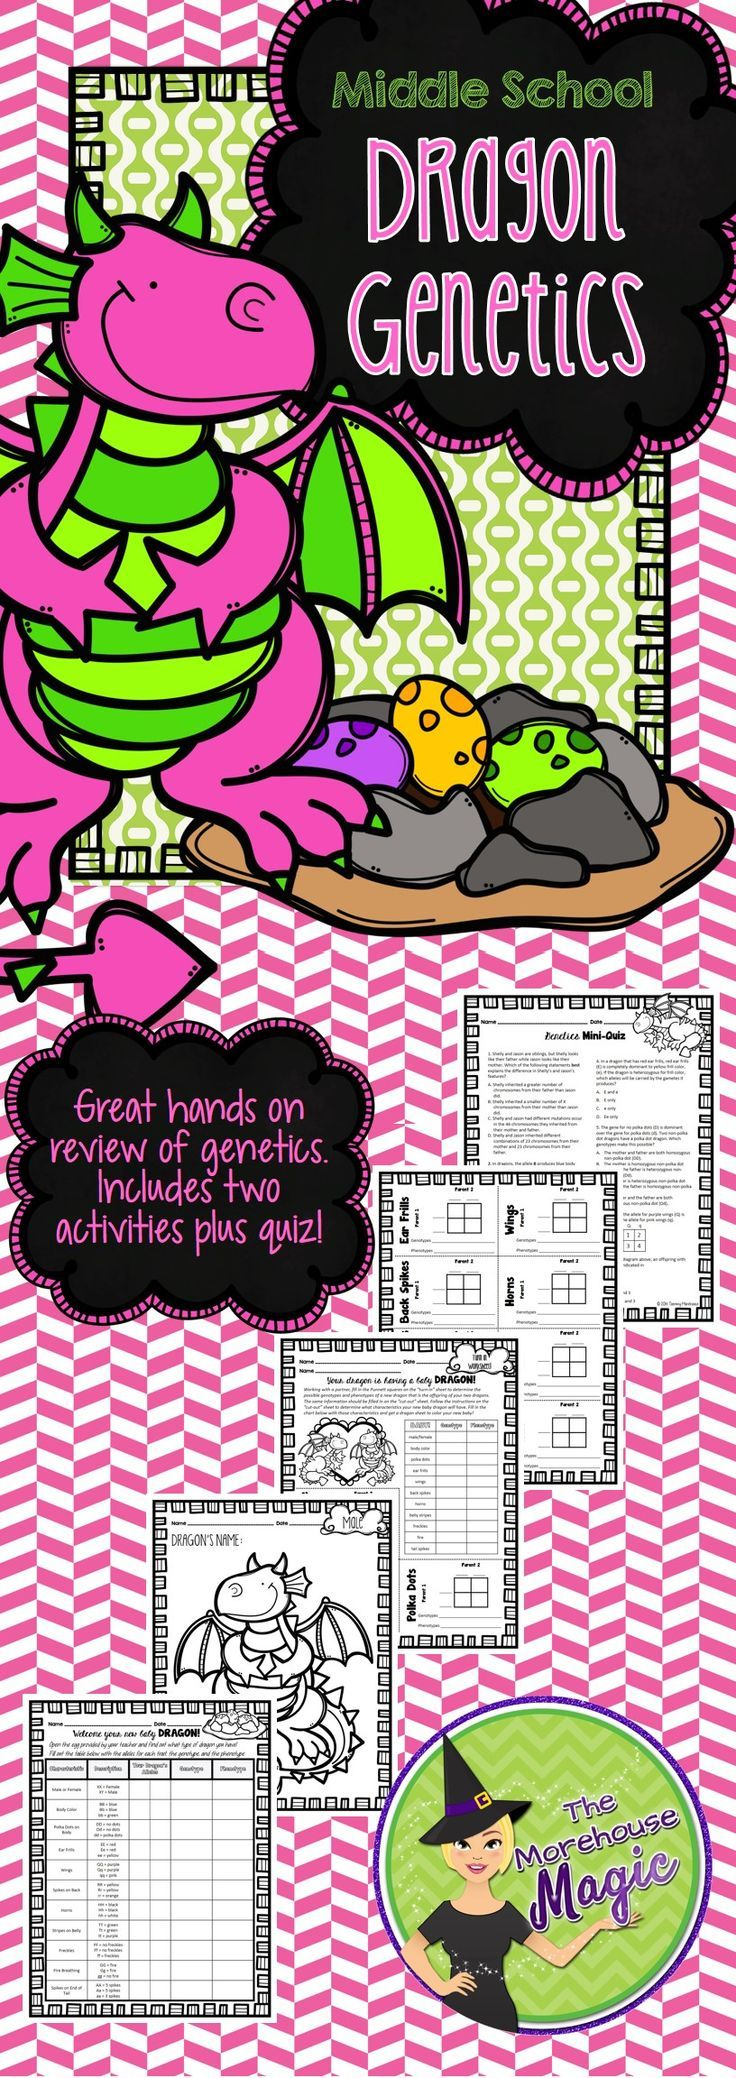 Collaborative Learning, Dragon Genotypes and